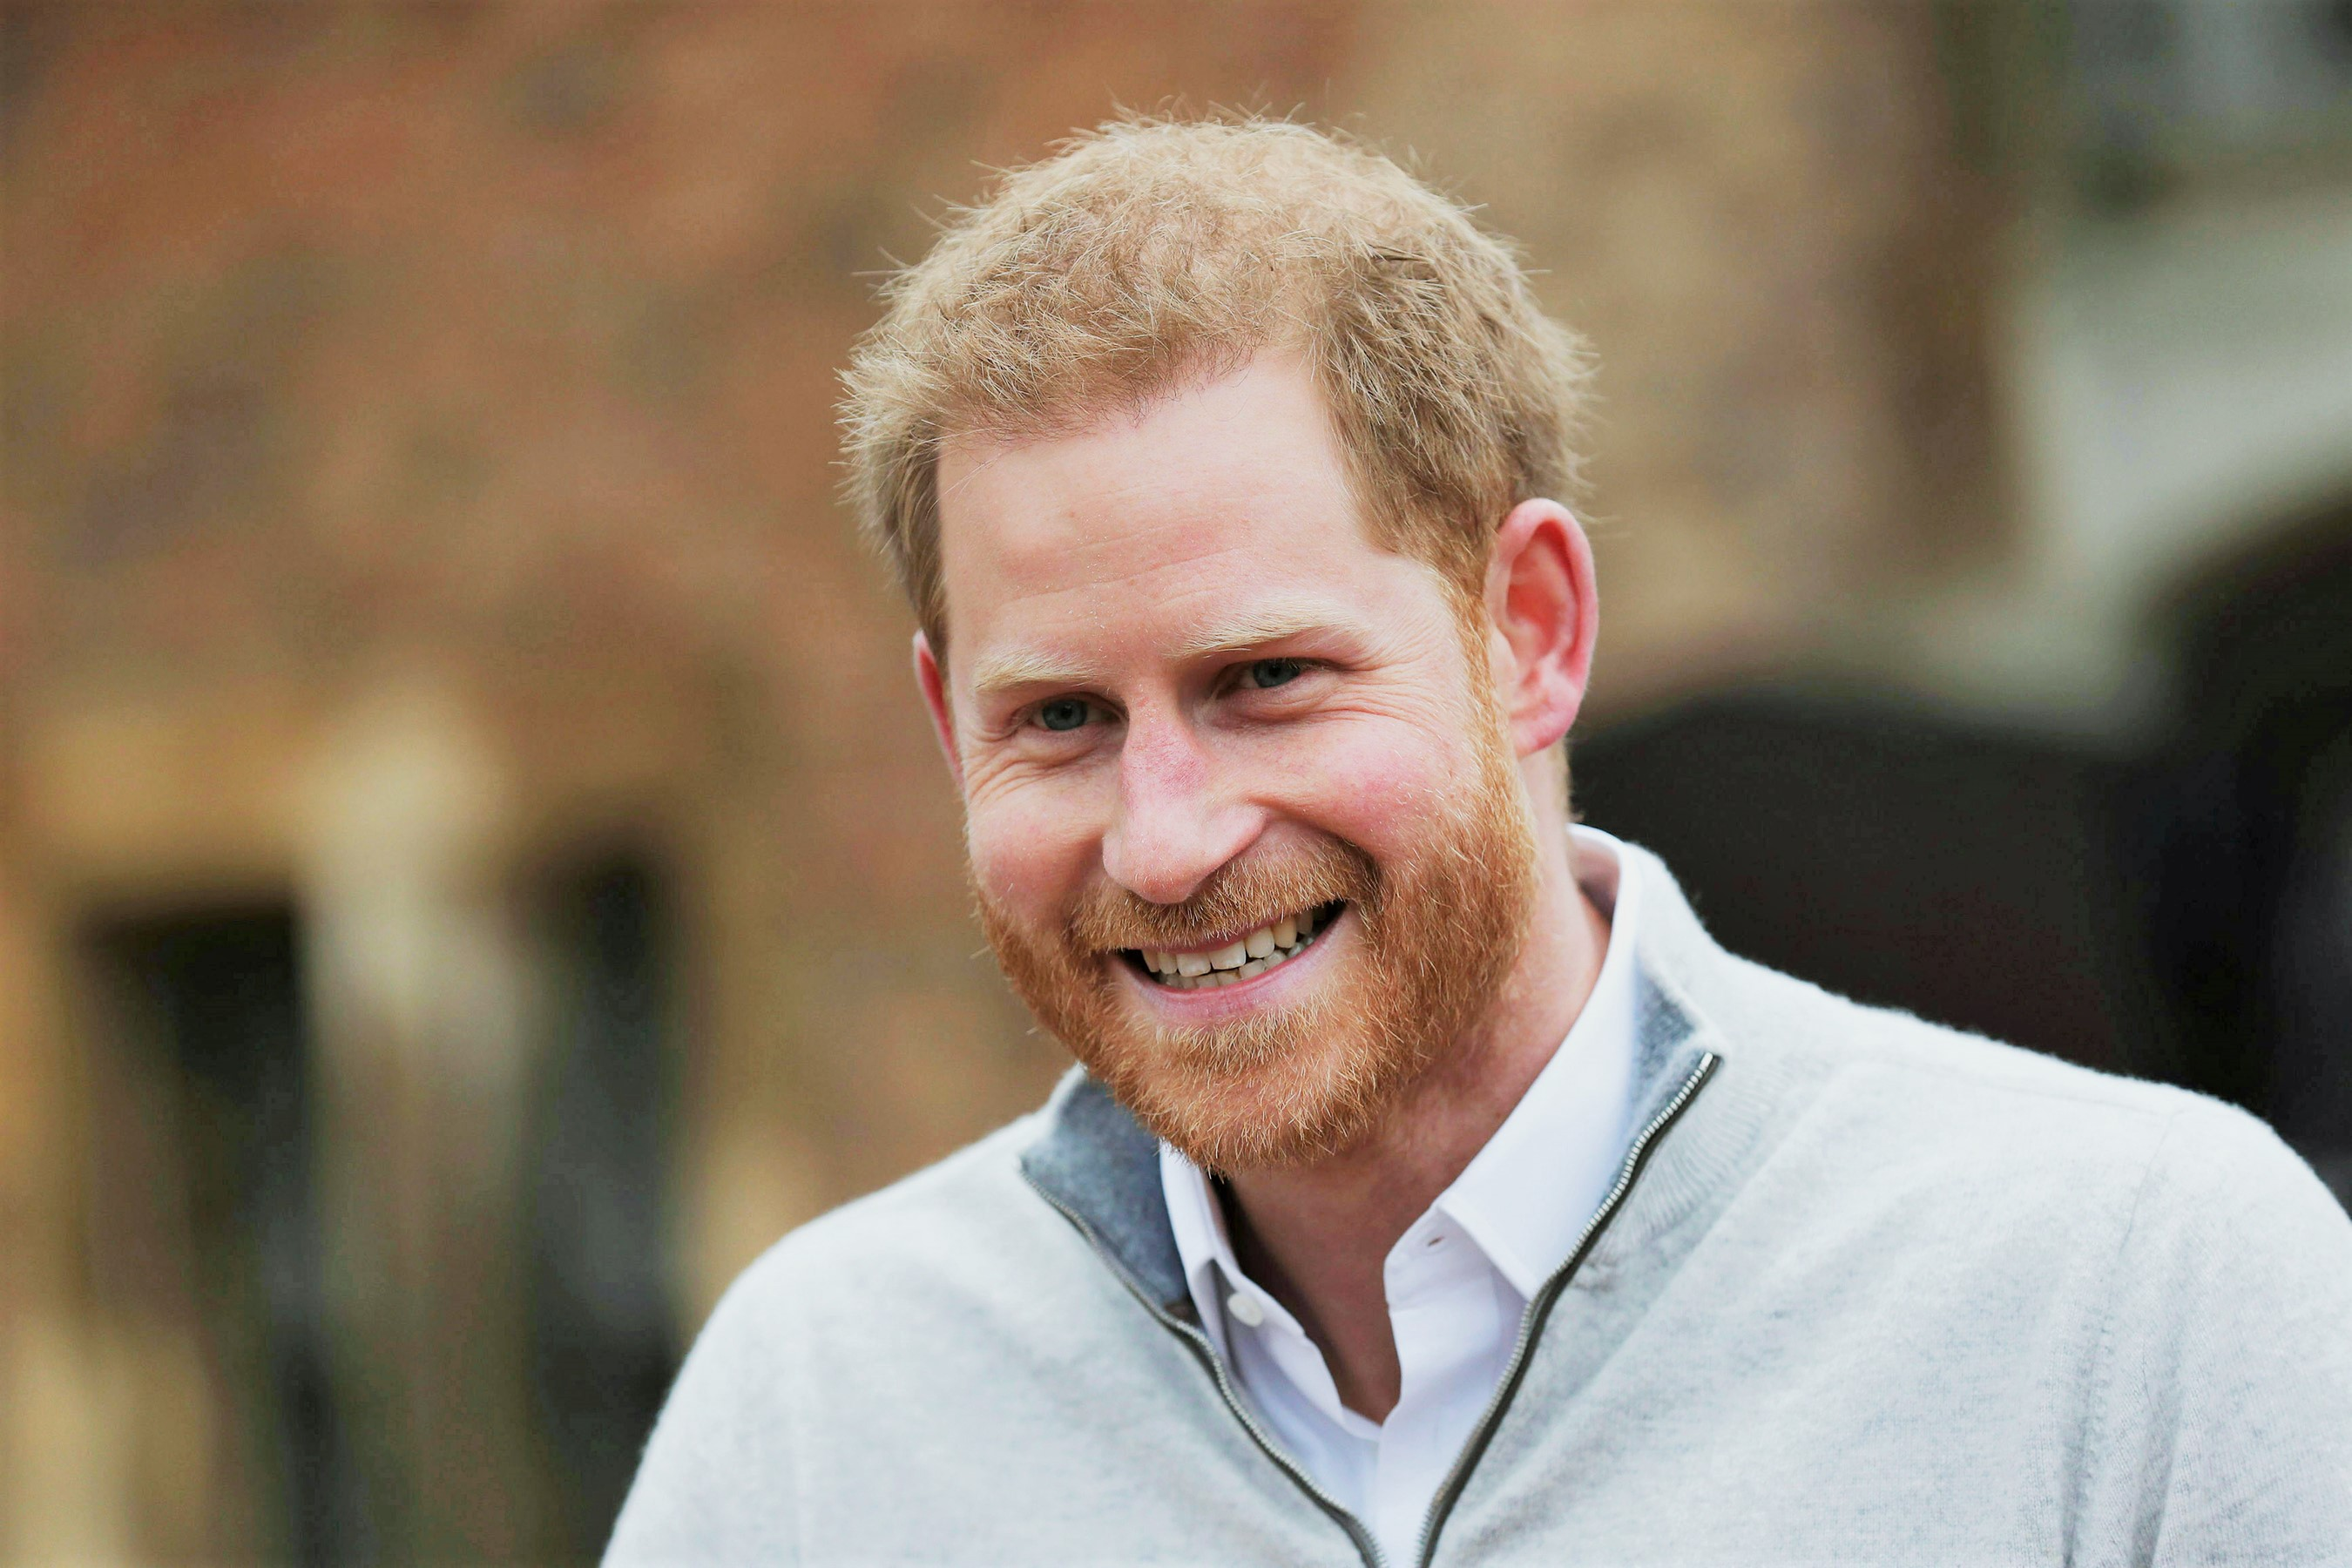 Prince Harry After Birth of Son